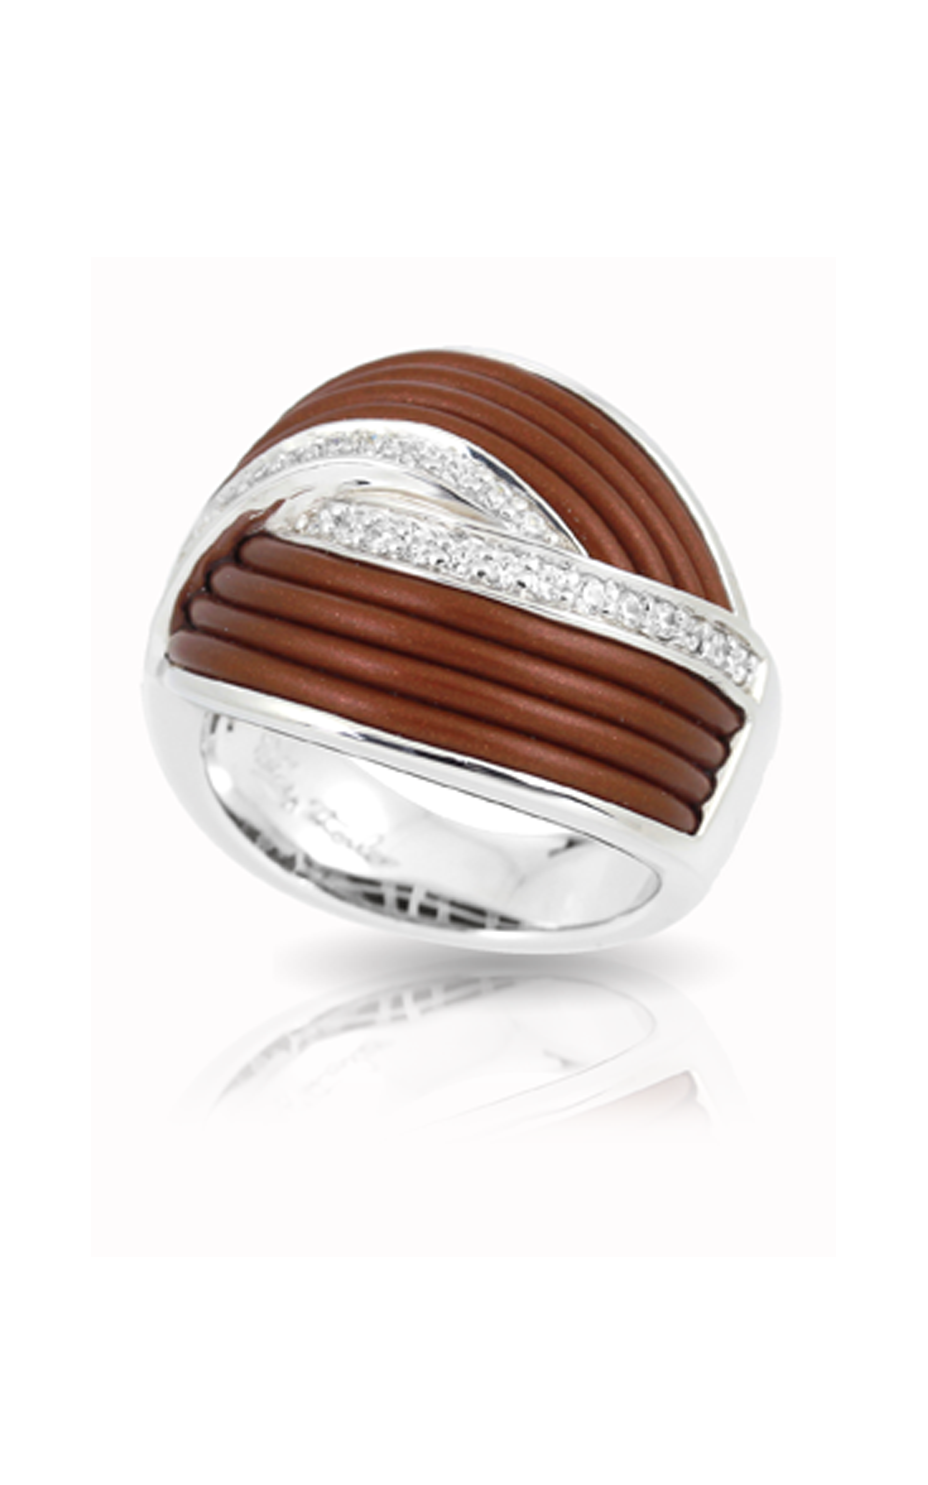 Belle Etoile Eterno Brown Ring 01051220502-8 product image